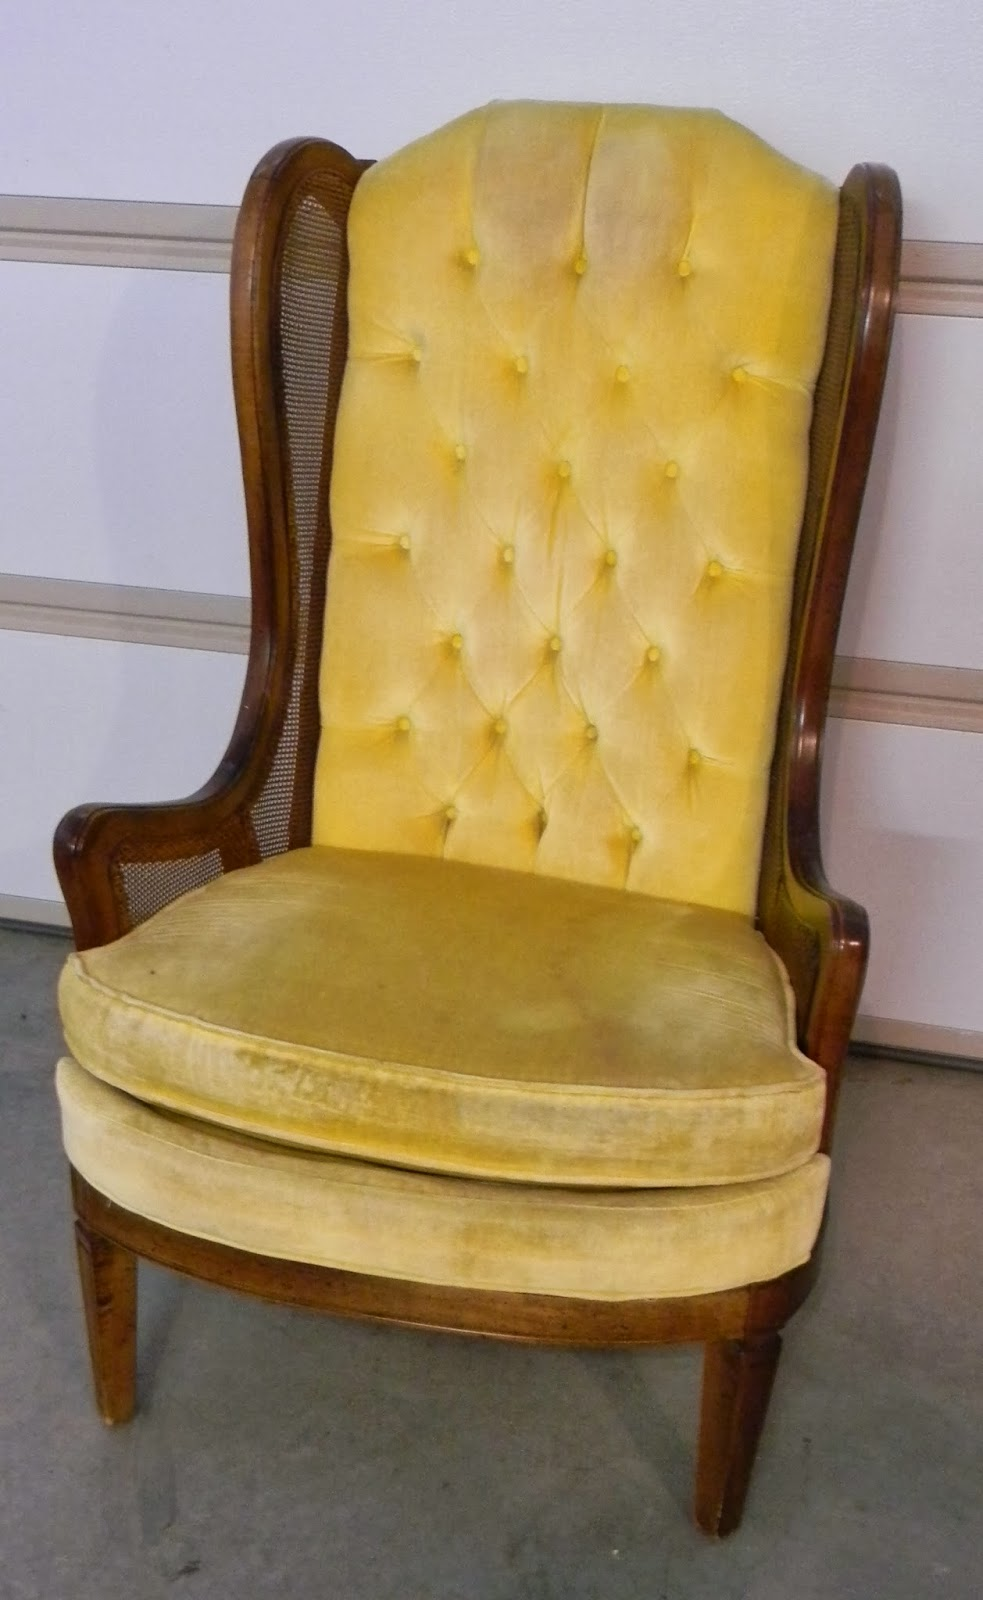 Charming Painted Upholstered Chair